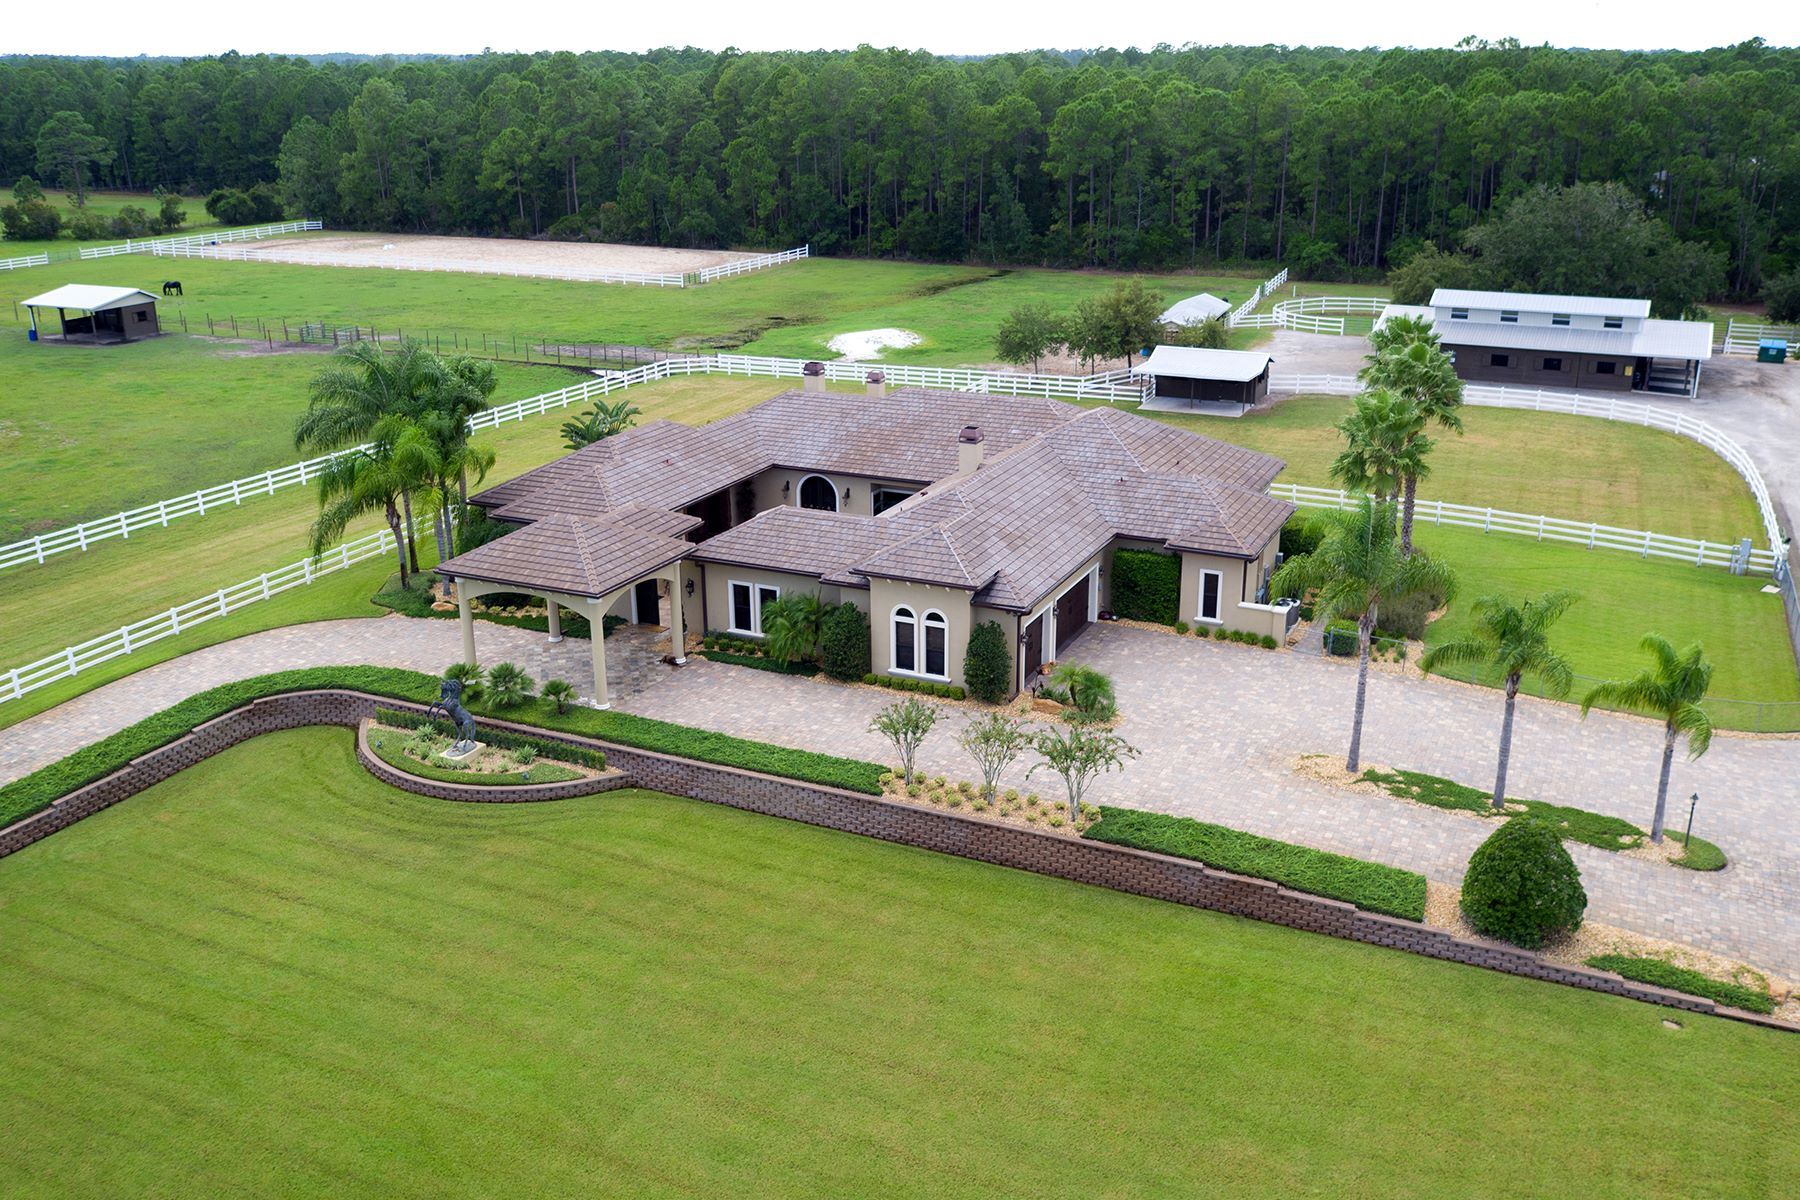 Single Family Home for Sale at NEW SMYRNA BEACH,FLORIDA 330 Spring Forest Dr New Smyrna Beach, Florida, 32168 United States